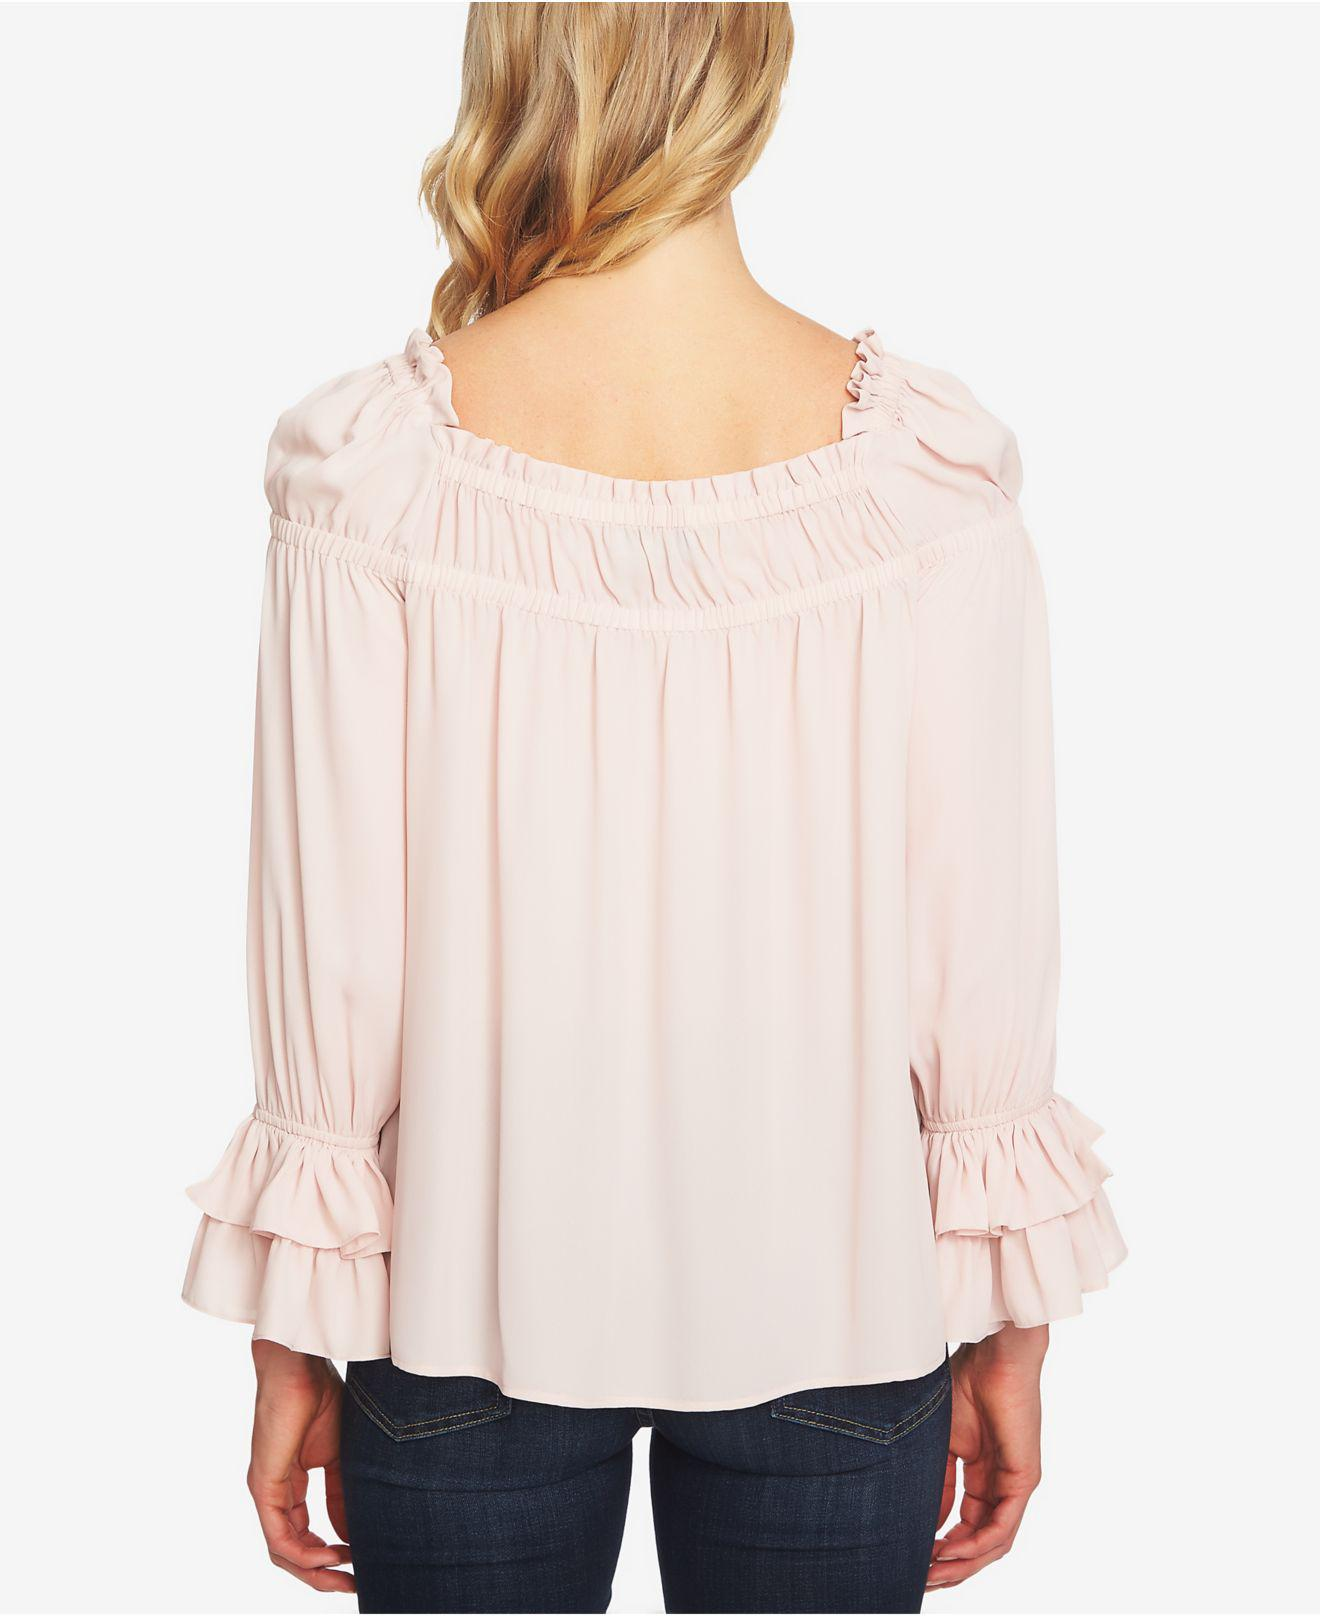 7fa482bf6 Cece Ruffled Puff-shoulder Top in Pink - Lyst